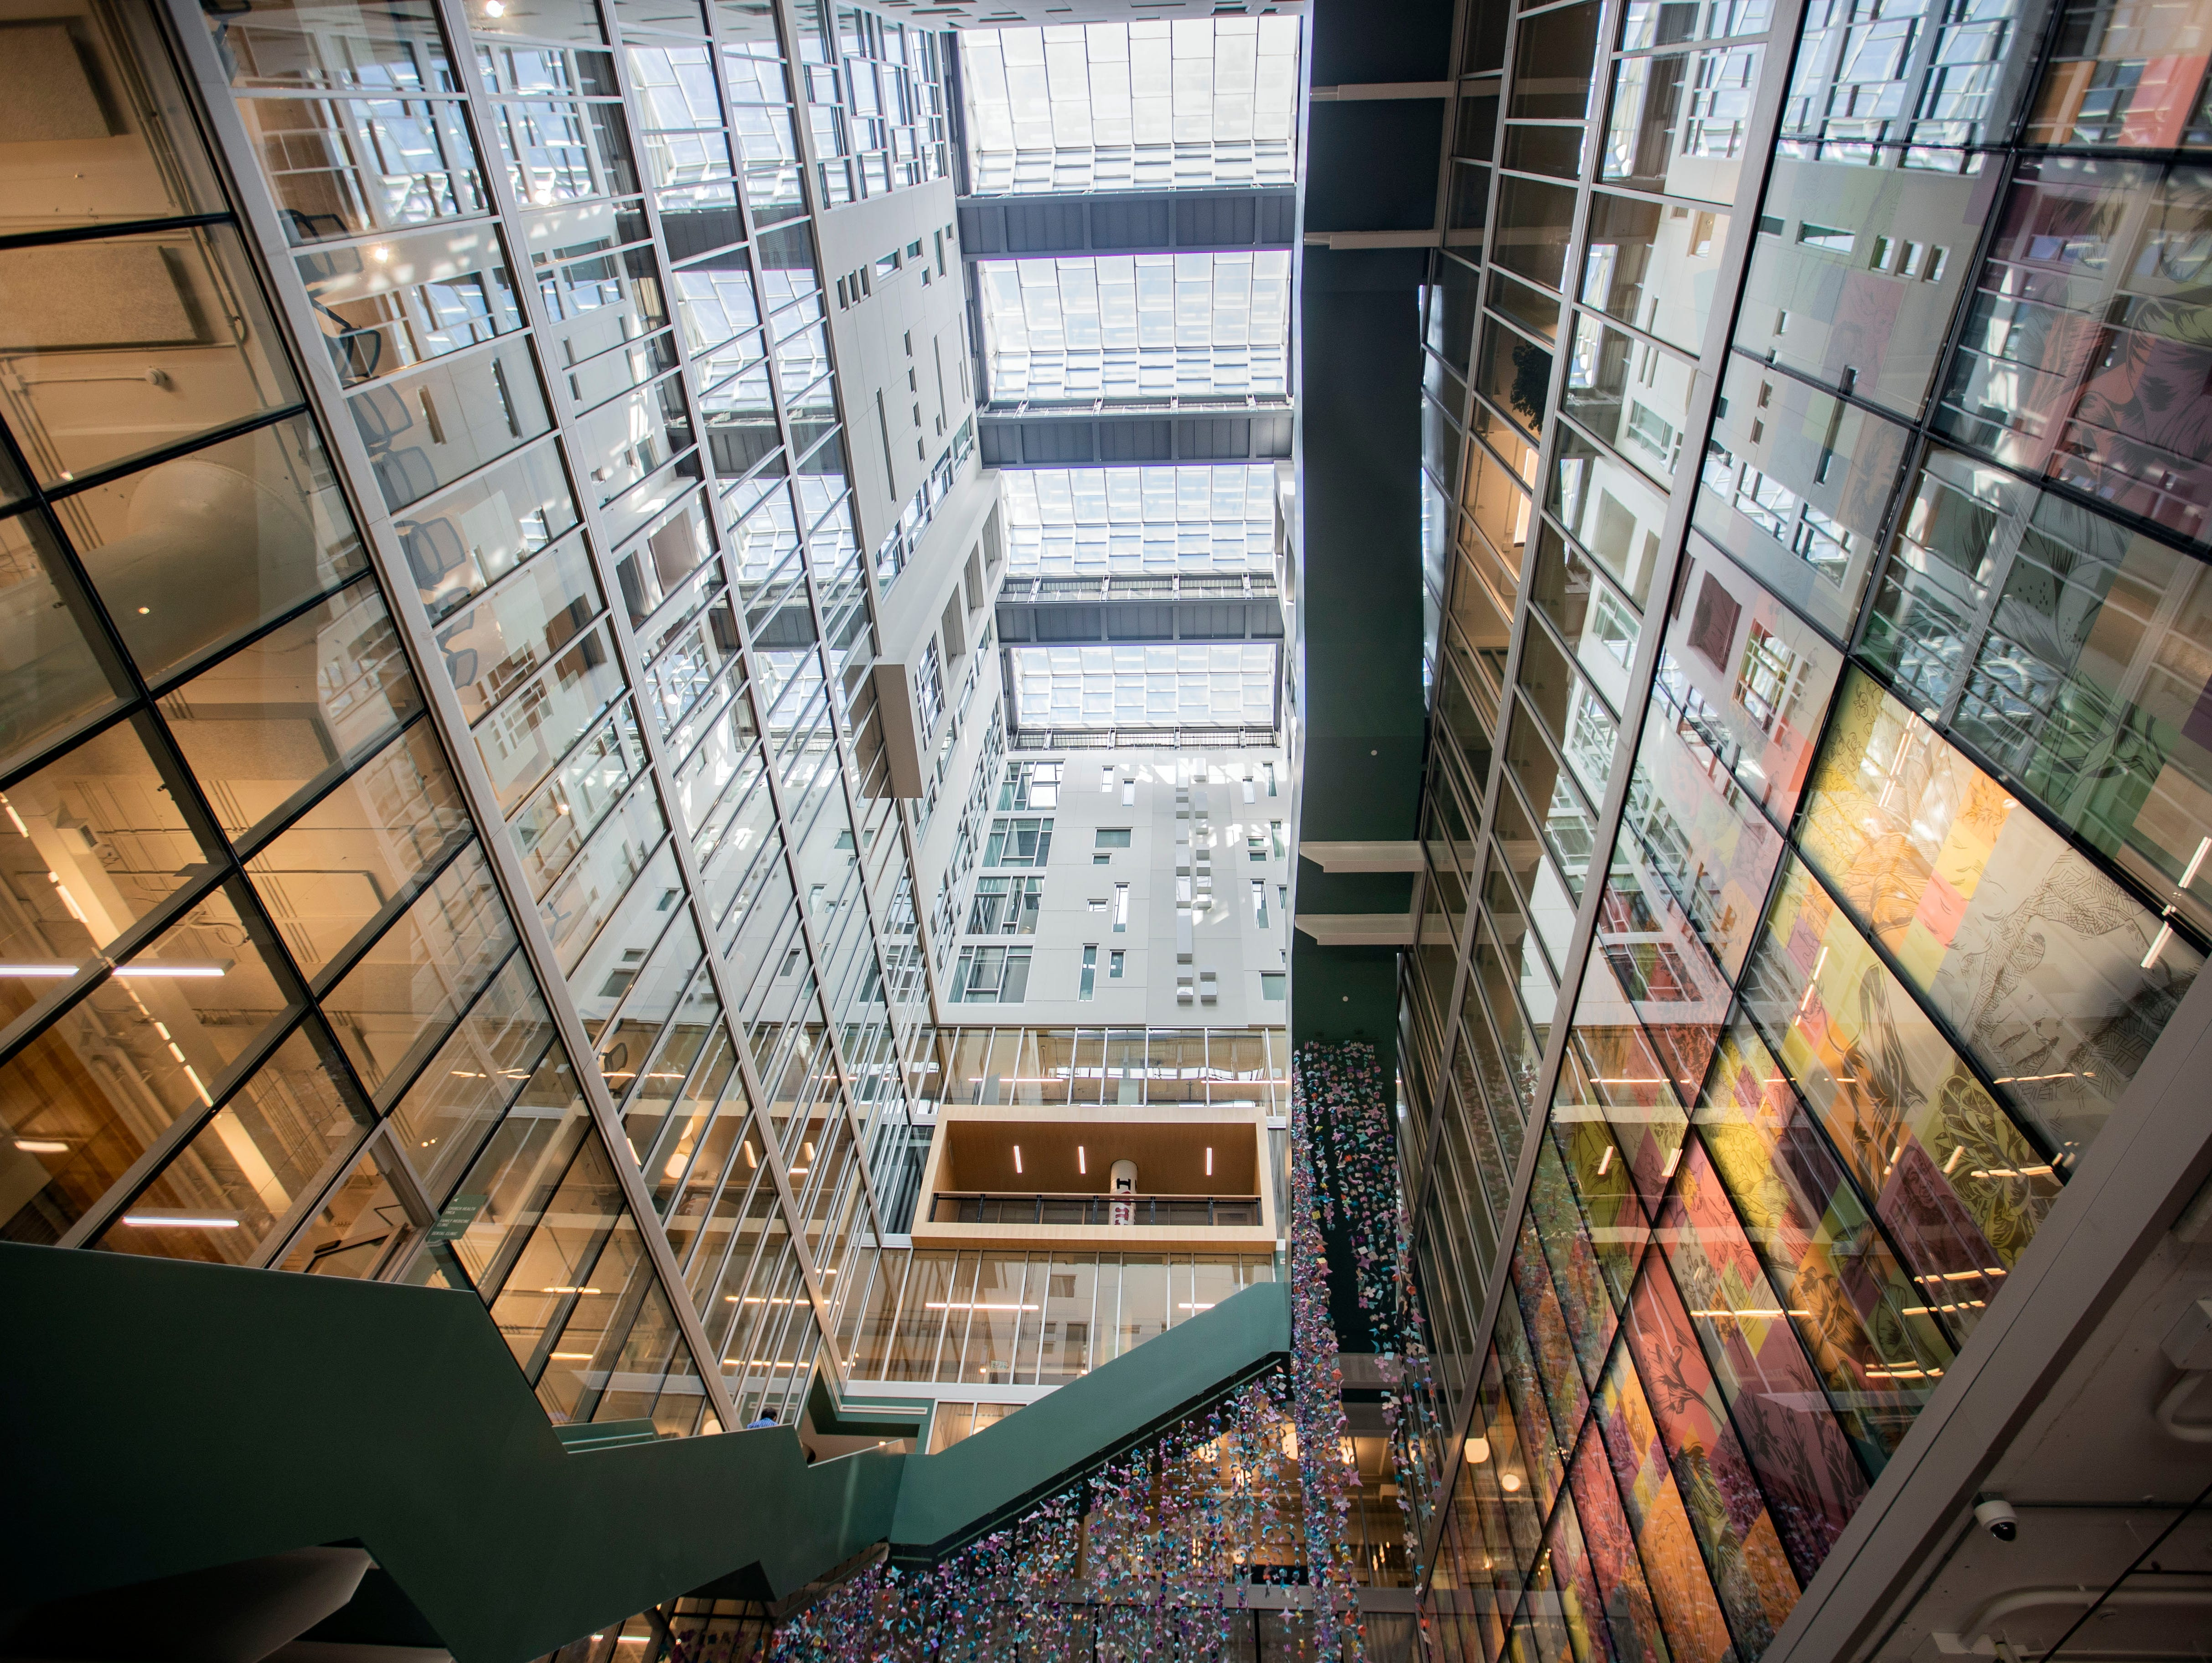 Crosstown Concourse is a 1.5million-square-foot mixed-use space that holds a high school, apartments, office spaces, retail stores, a pharmacy, coffee shop, art galleries and much more.